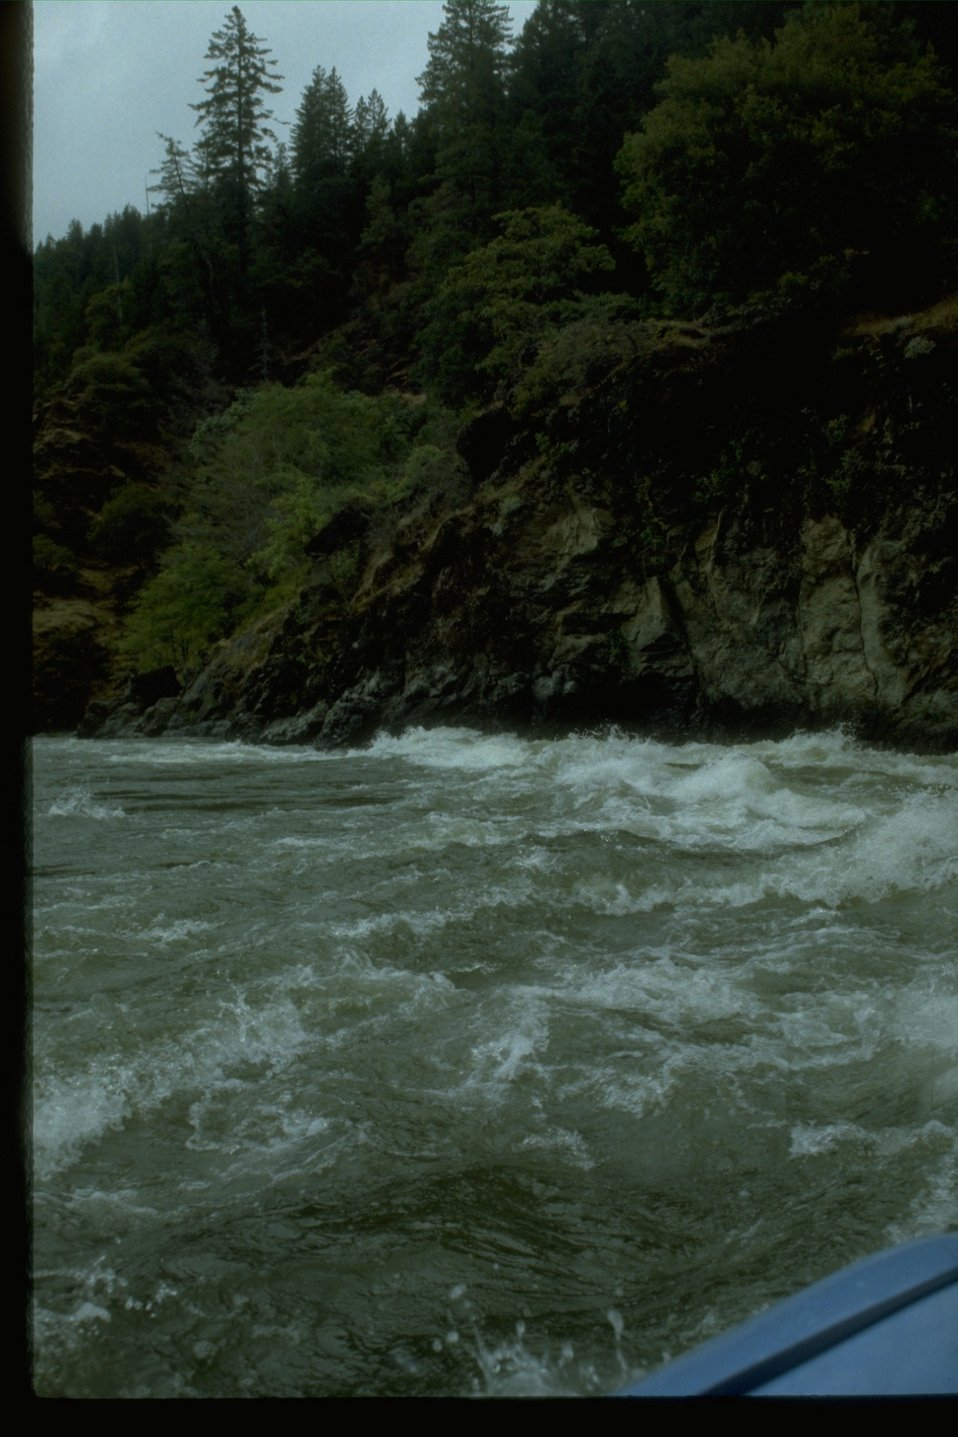 Wild whitewater section of the Rogue River.